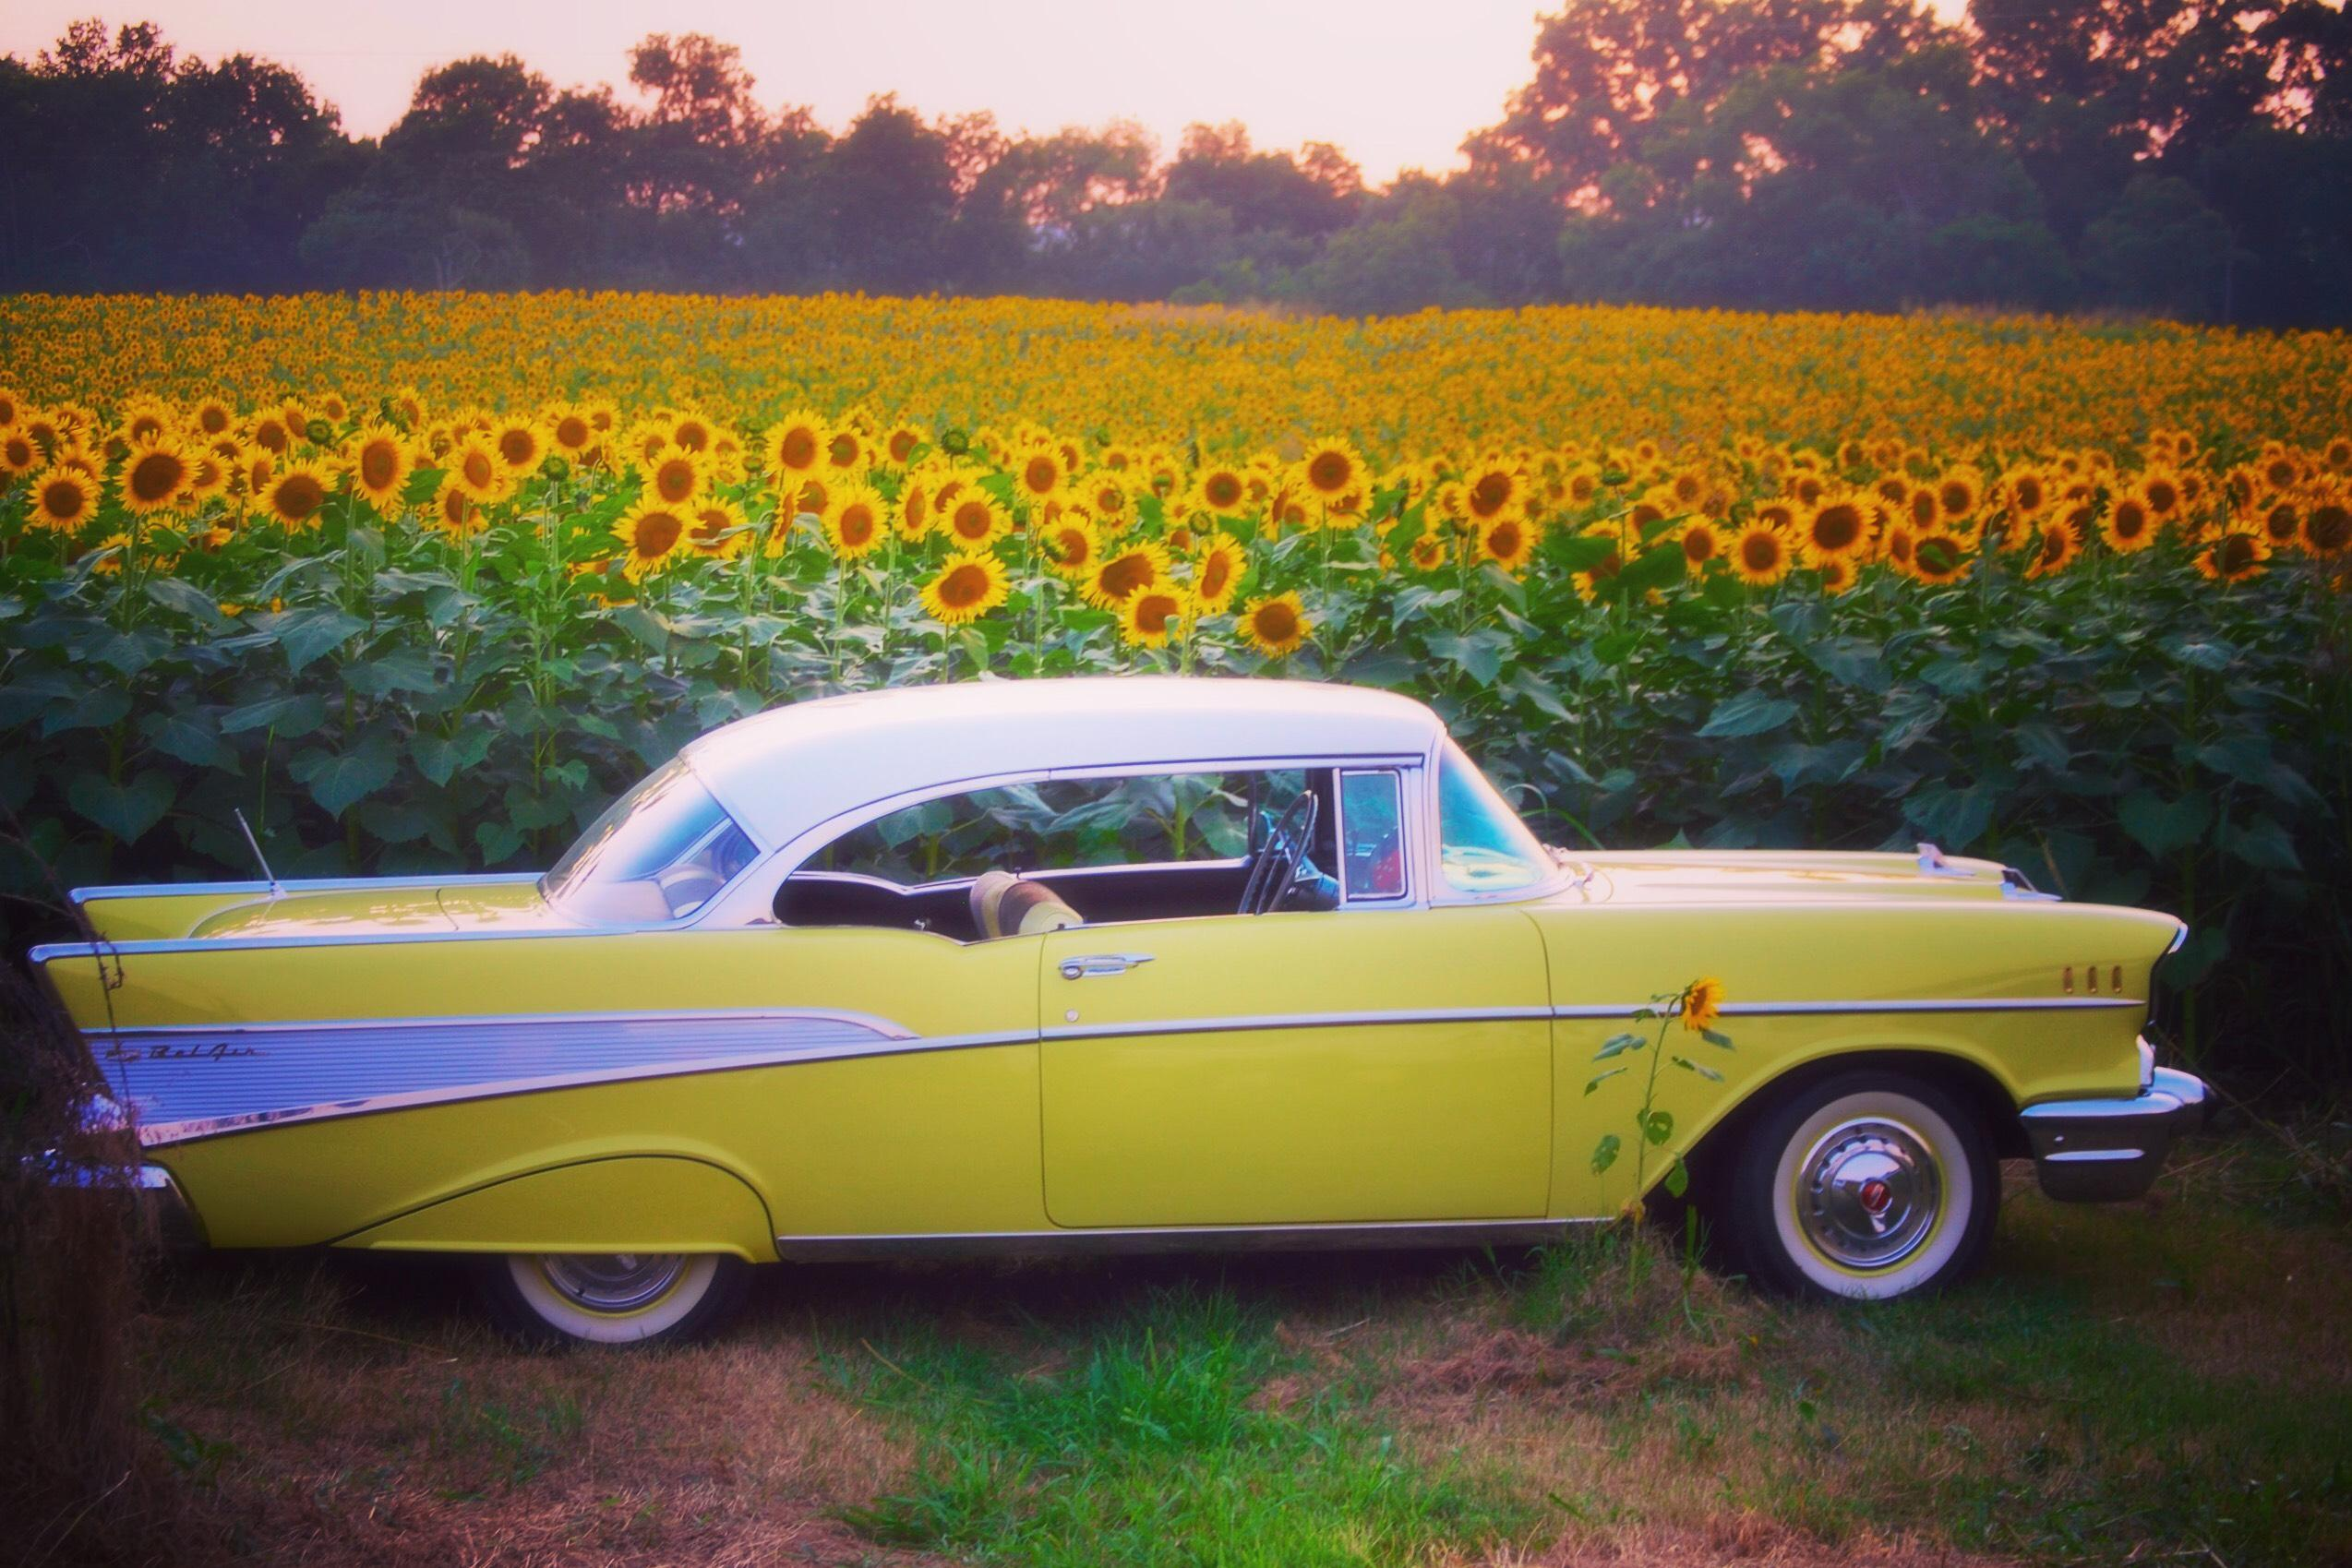 Photo of the Day: Ooltewah sunflower field